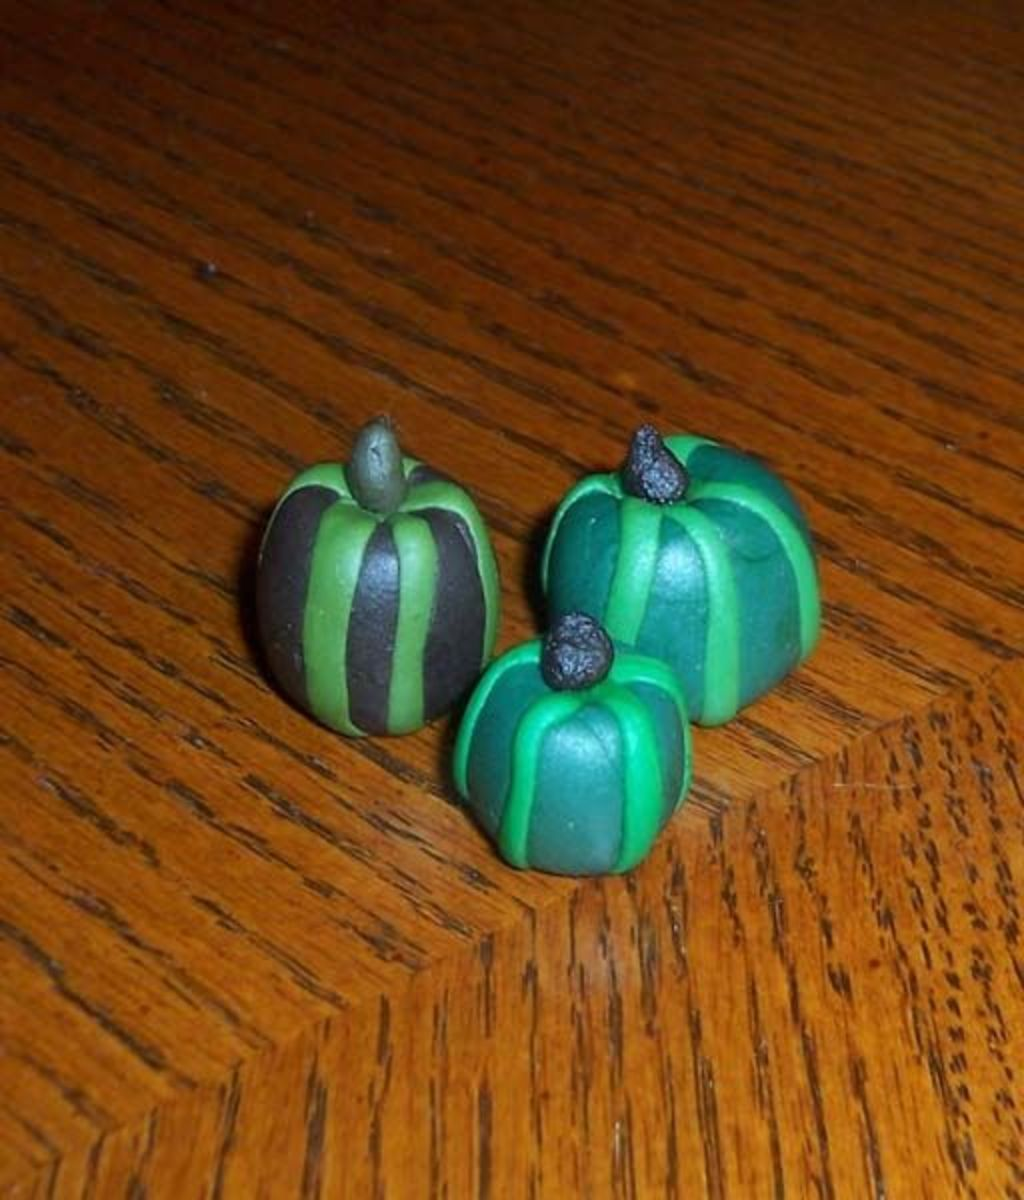 Squat green gourds made of fondant